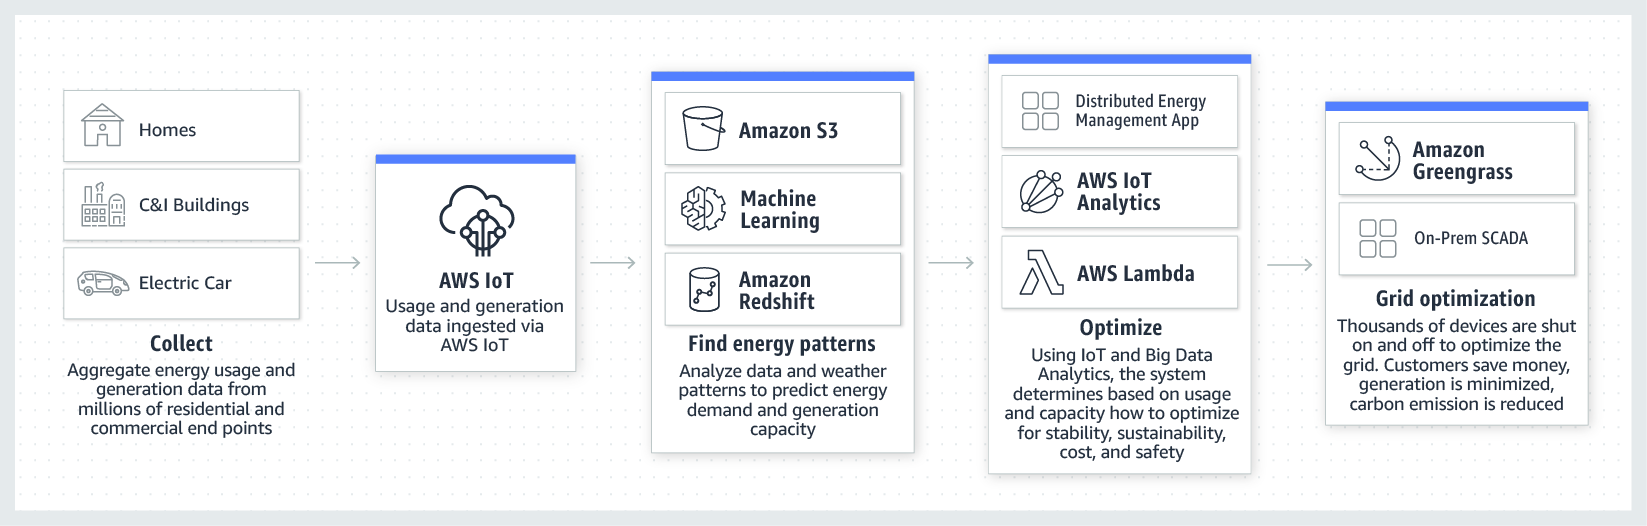 product-page-diagram-AWS-for-Power-Utilities_DERMS